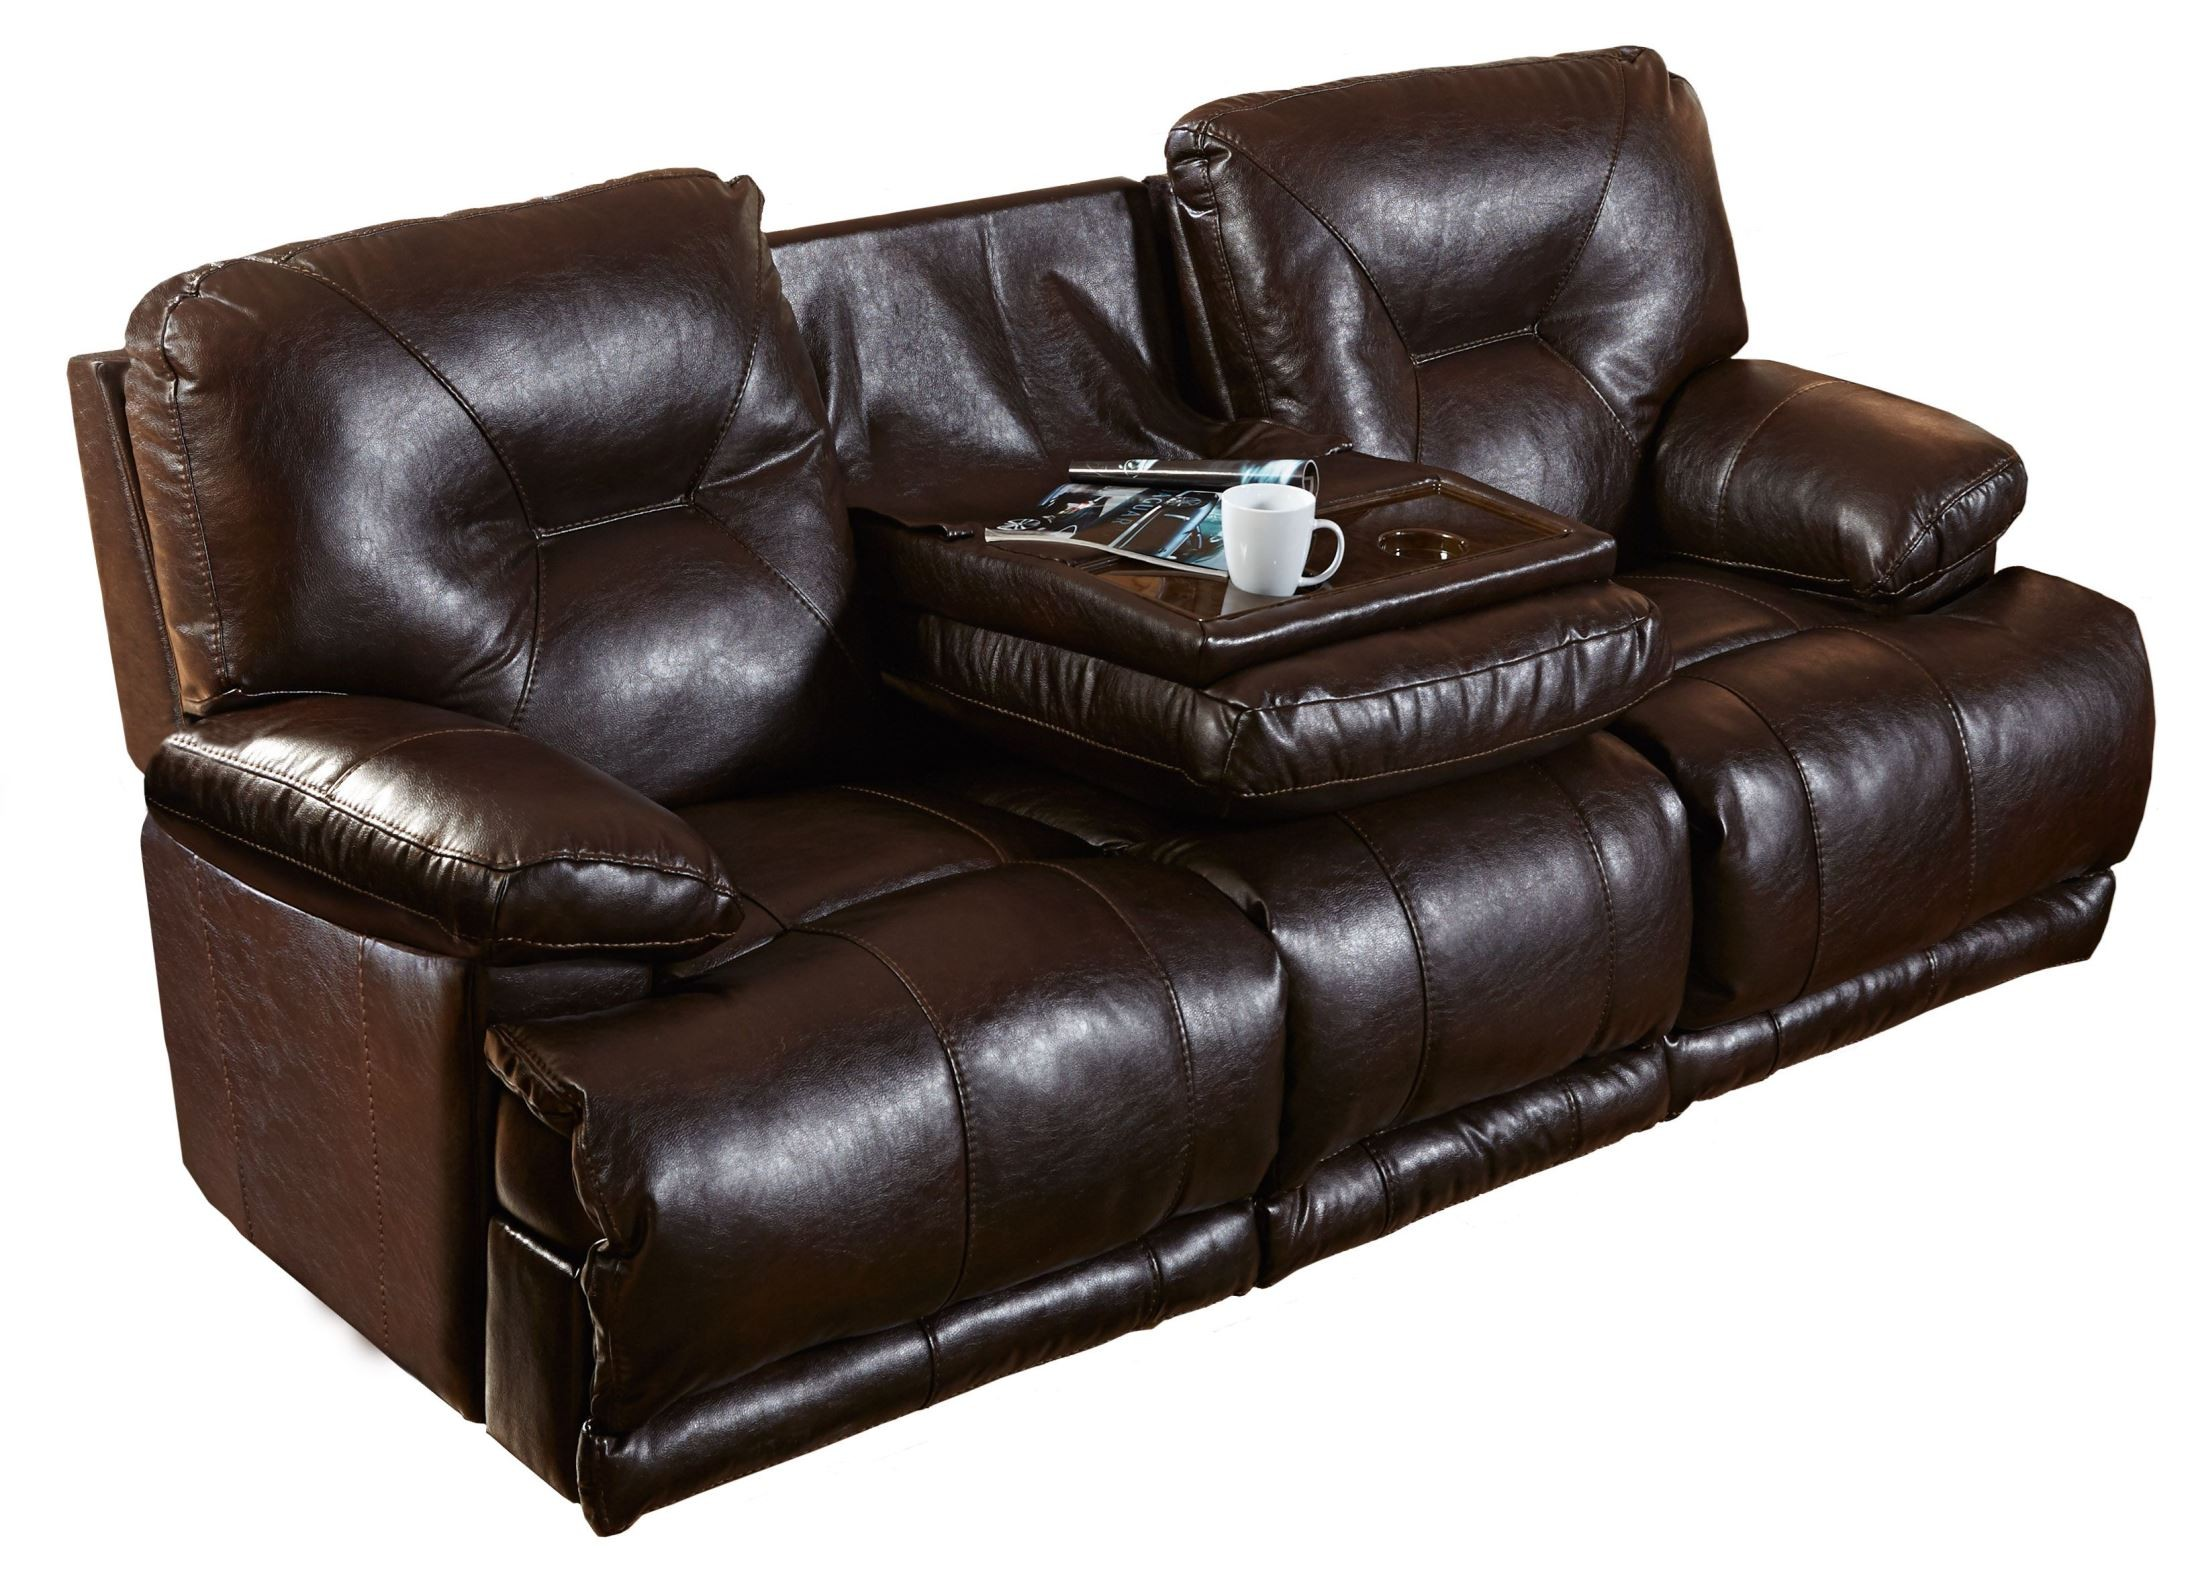 Mercury godiva power lay flat reclining sofa with drop for 1x super comfort recliner chaise